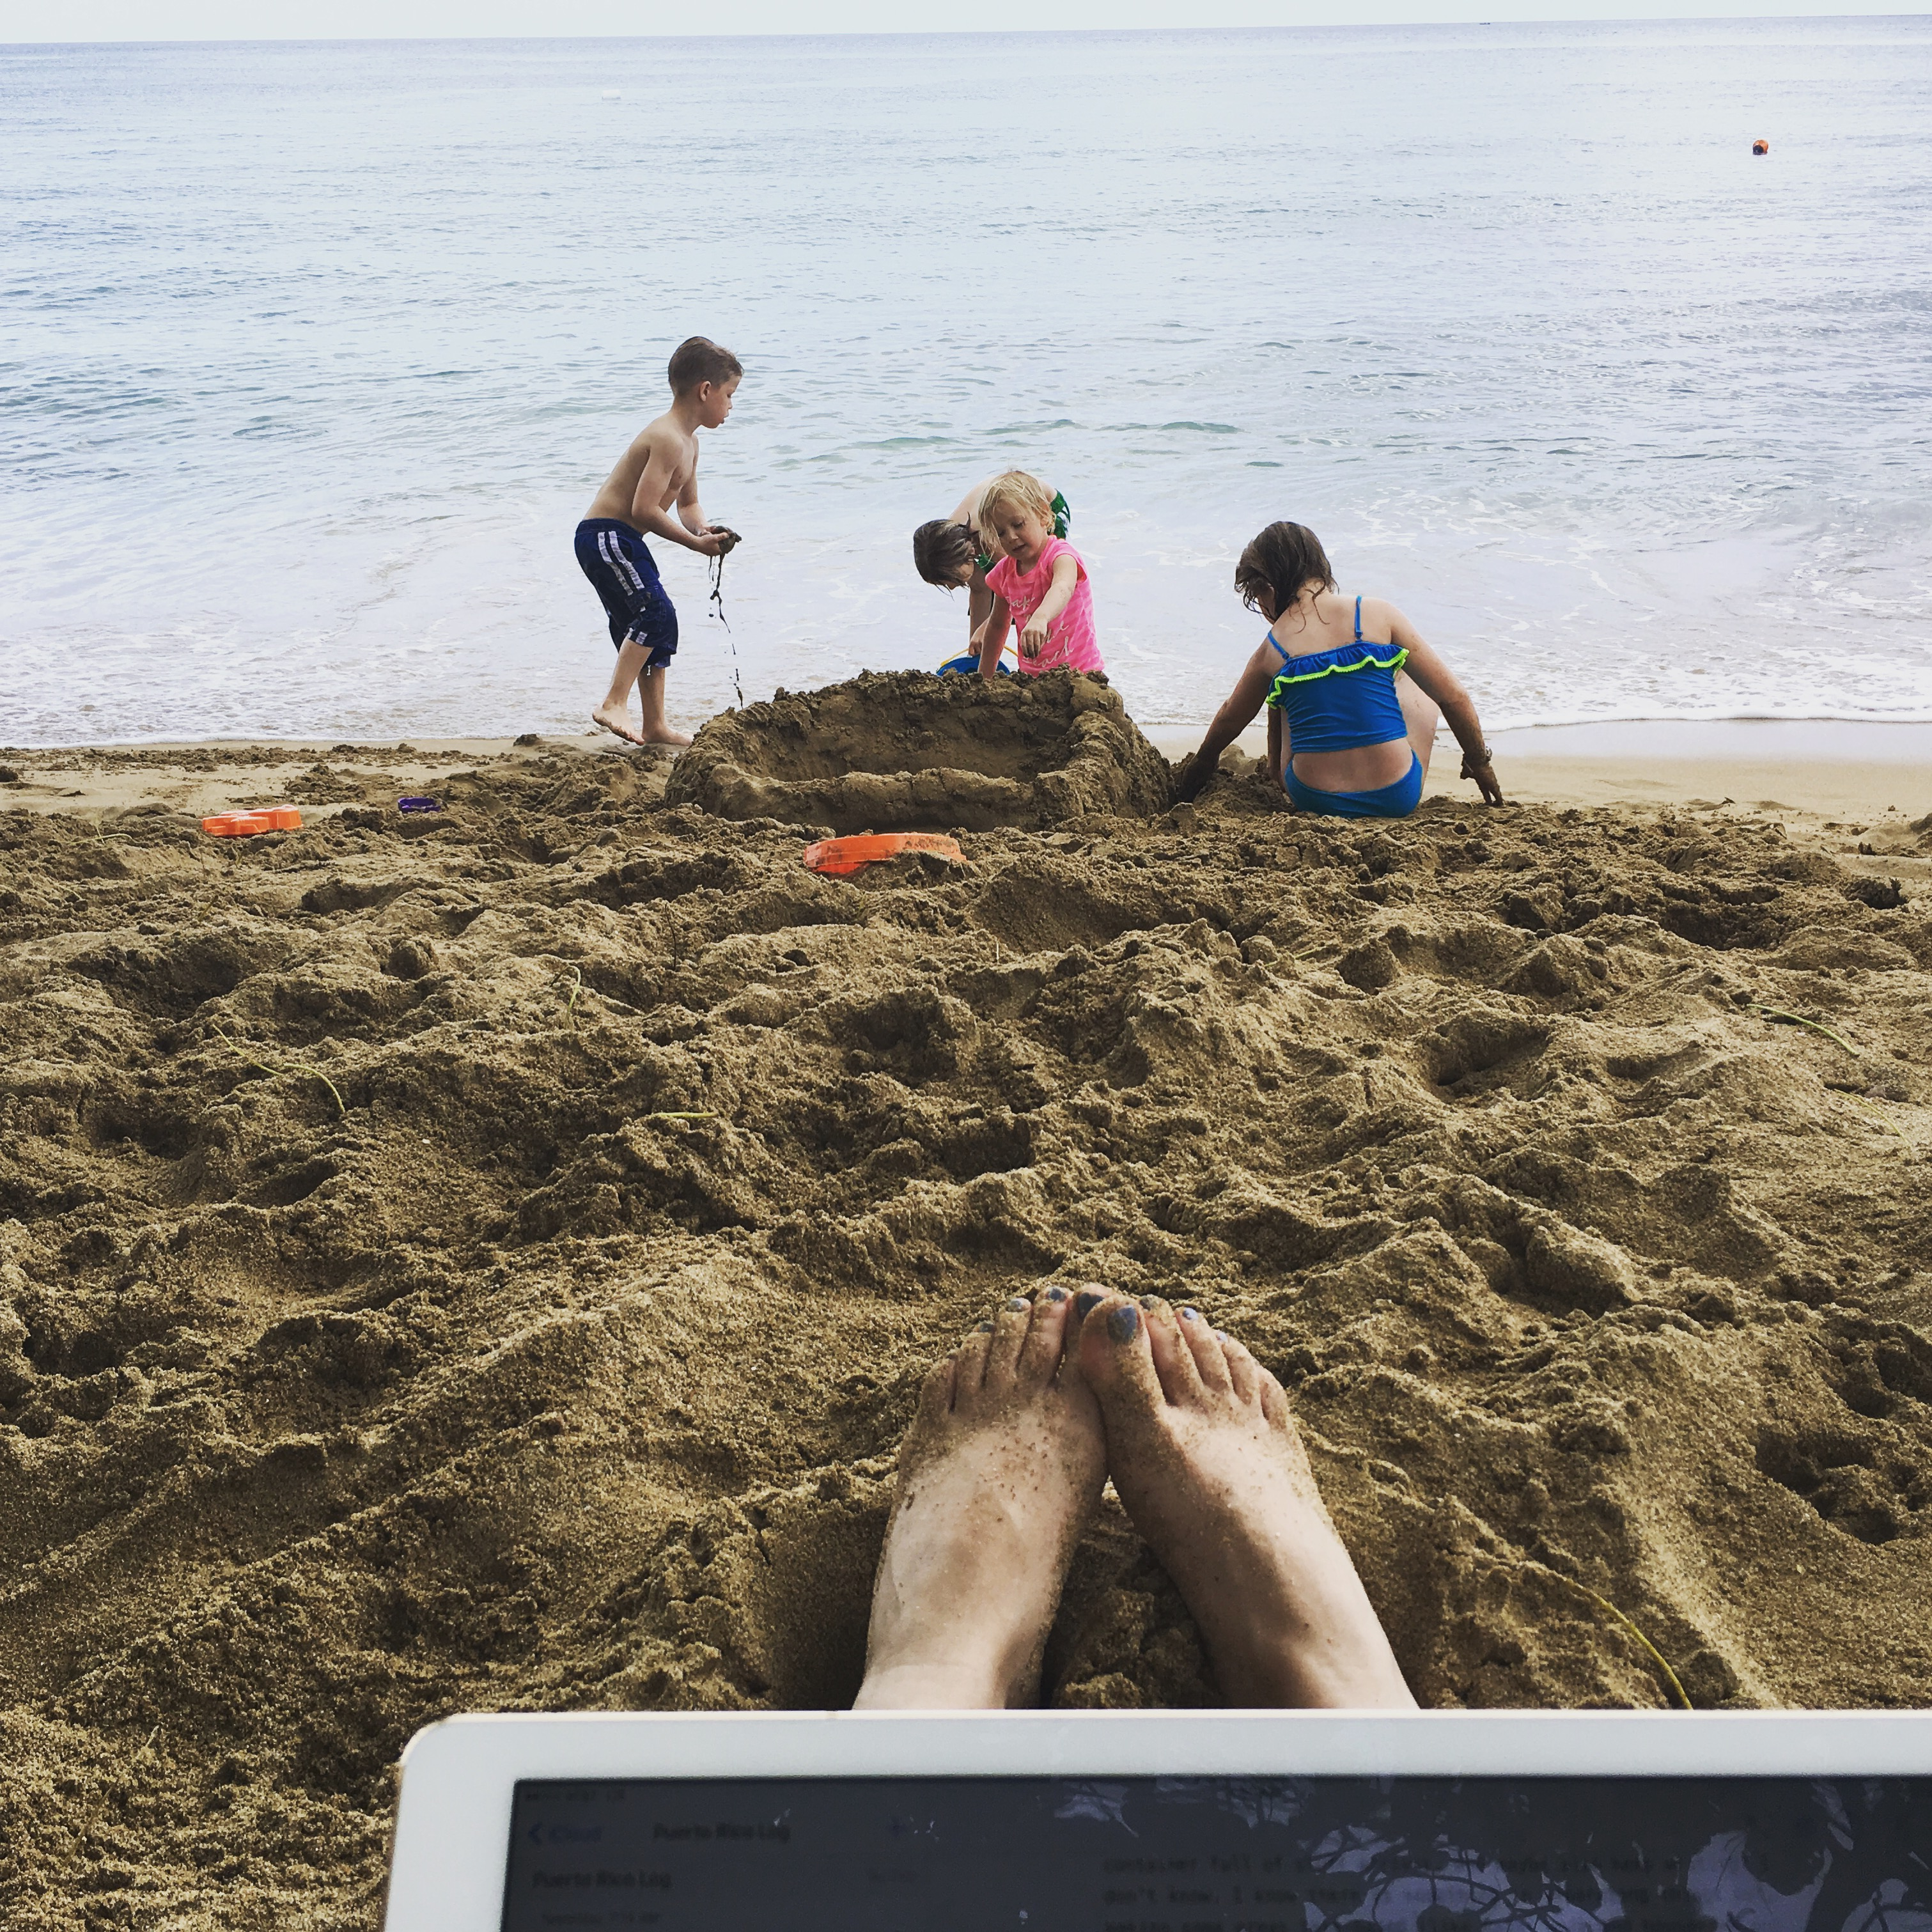 Sitting on the beach working on laptop while kids play.